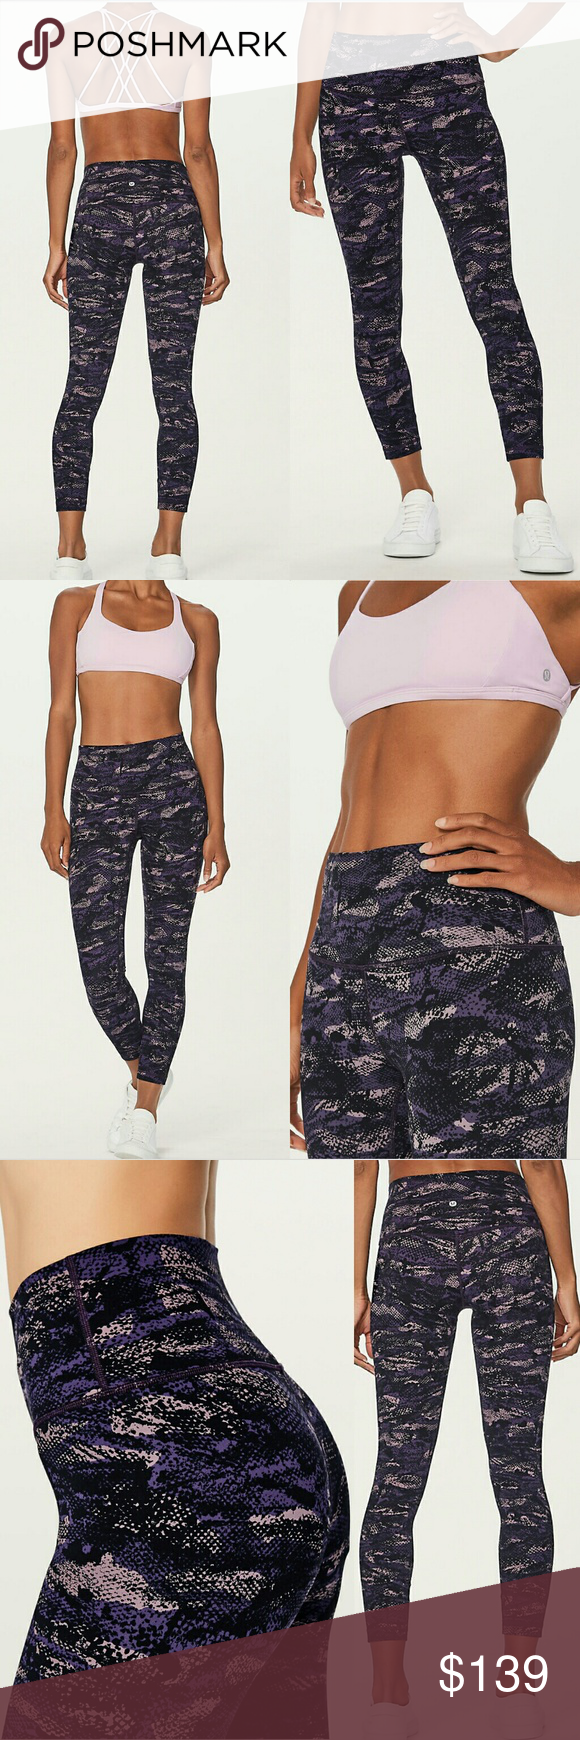 b8e3ee94a86f8 New lululemon align II pant legging purple camo 10 Brand new with tag. Sold  out Align 2 pant leggings in rip wave purple thunder camo pink black  camouflage ...